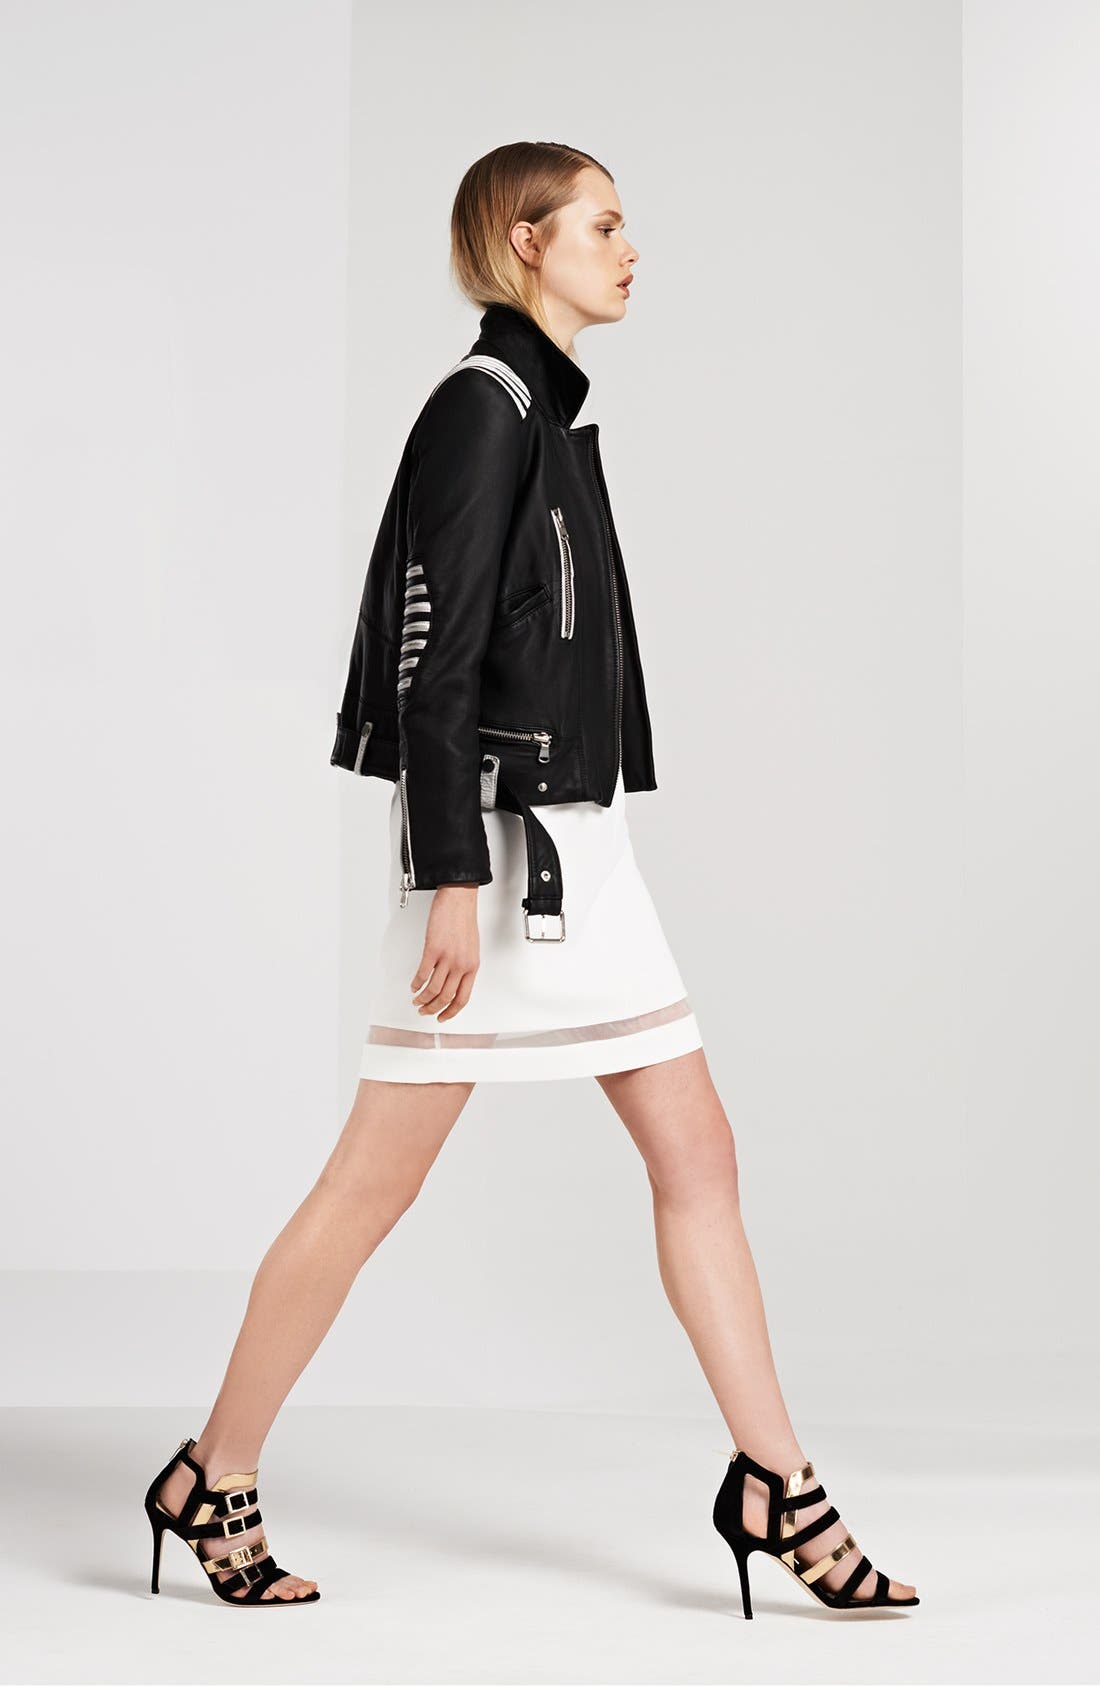 Alternate Image 1 Selected - The Kooples Crepe Dress & Leather Jacket